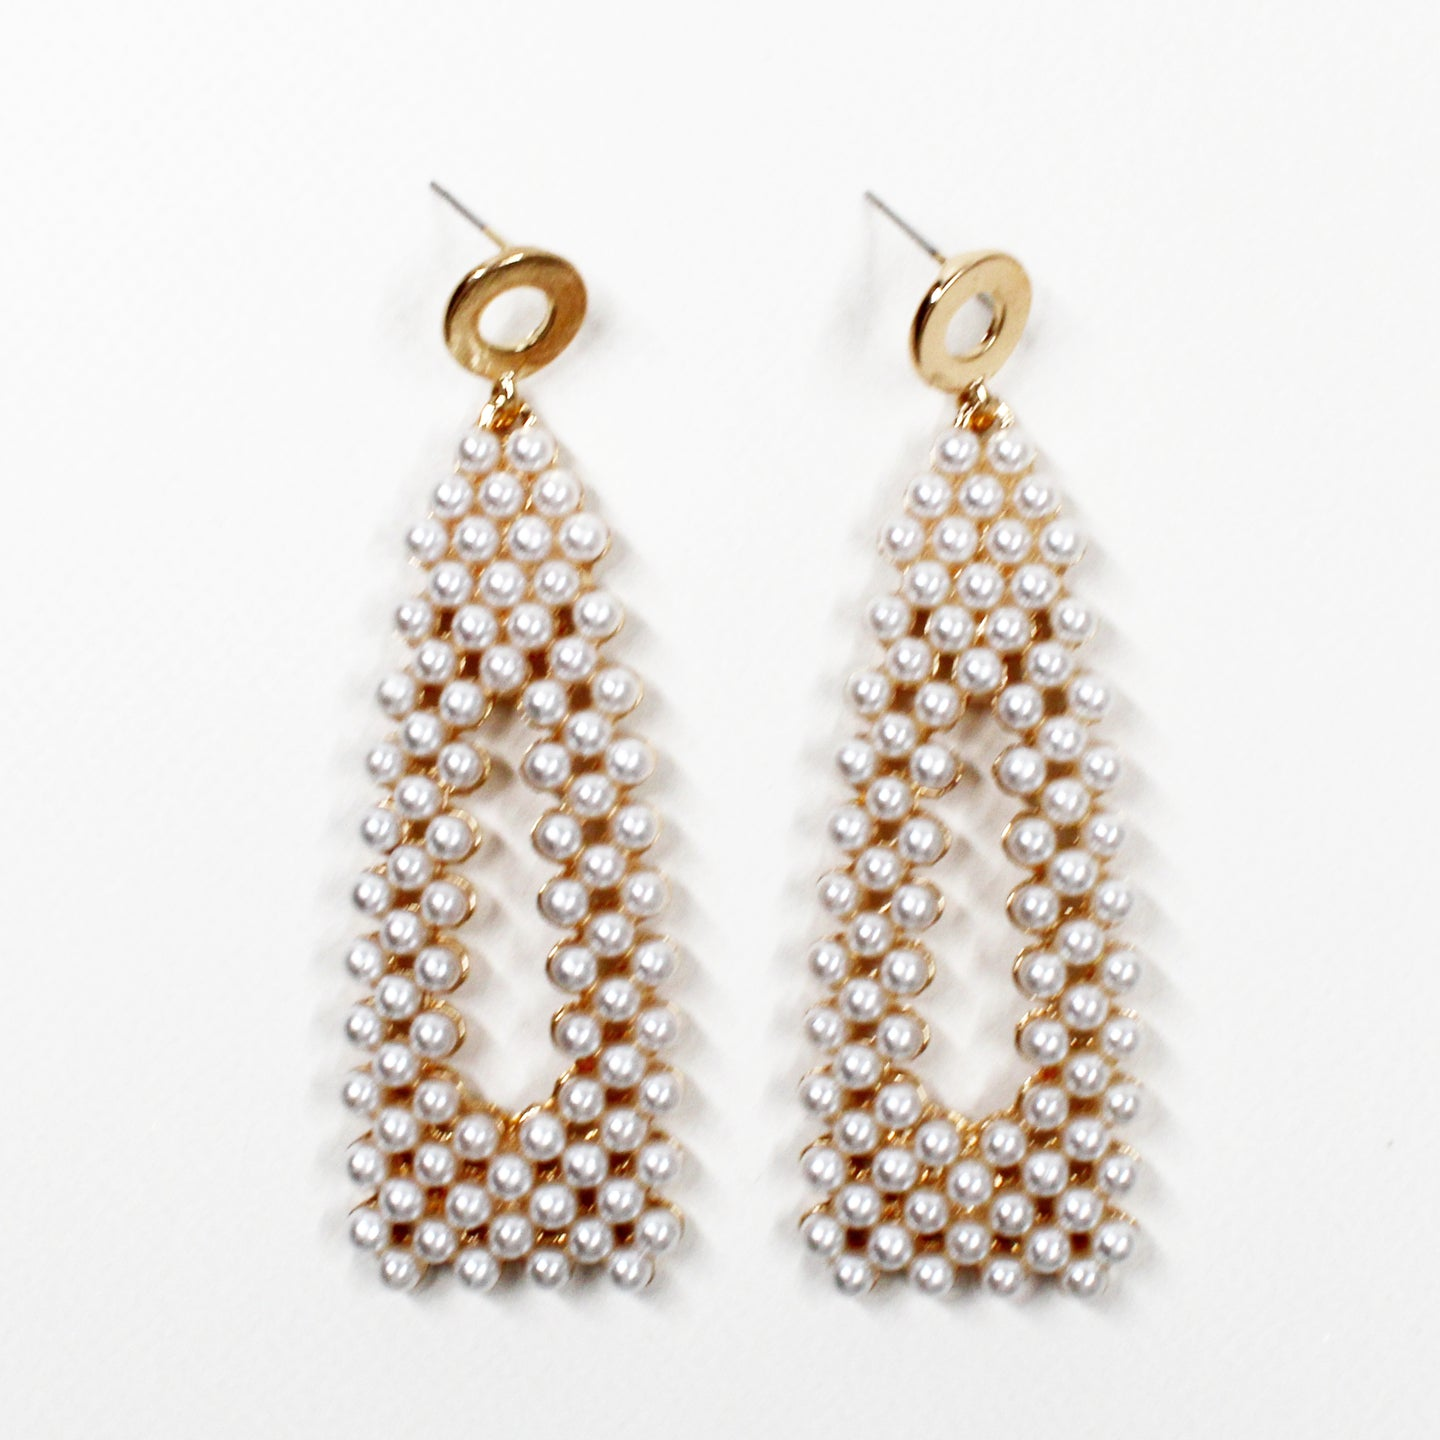 Kyla Pearl Weave Earrings - Triangle